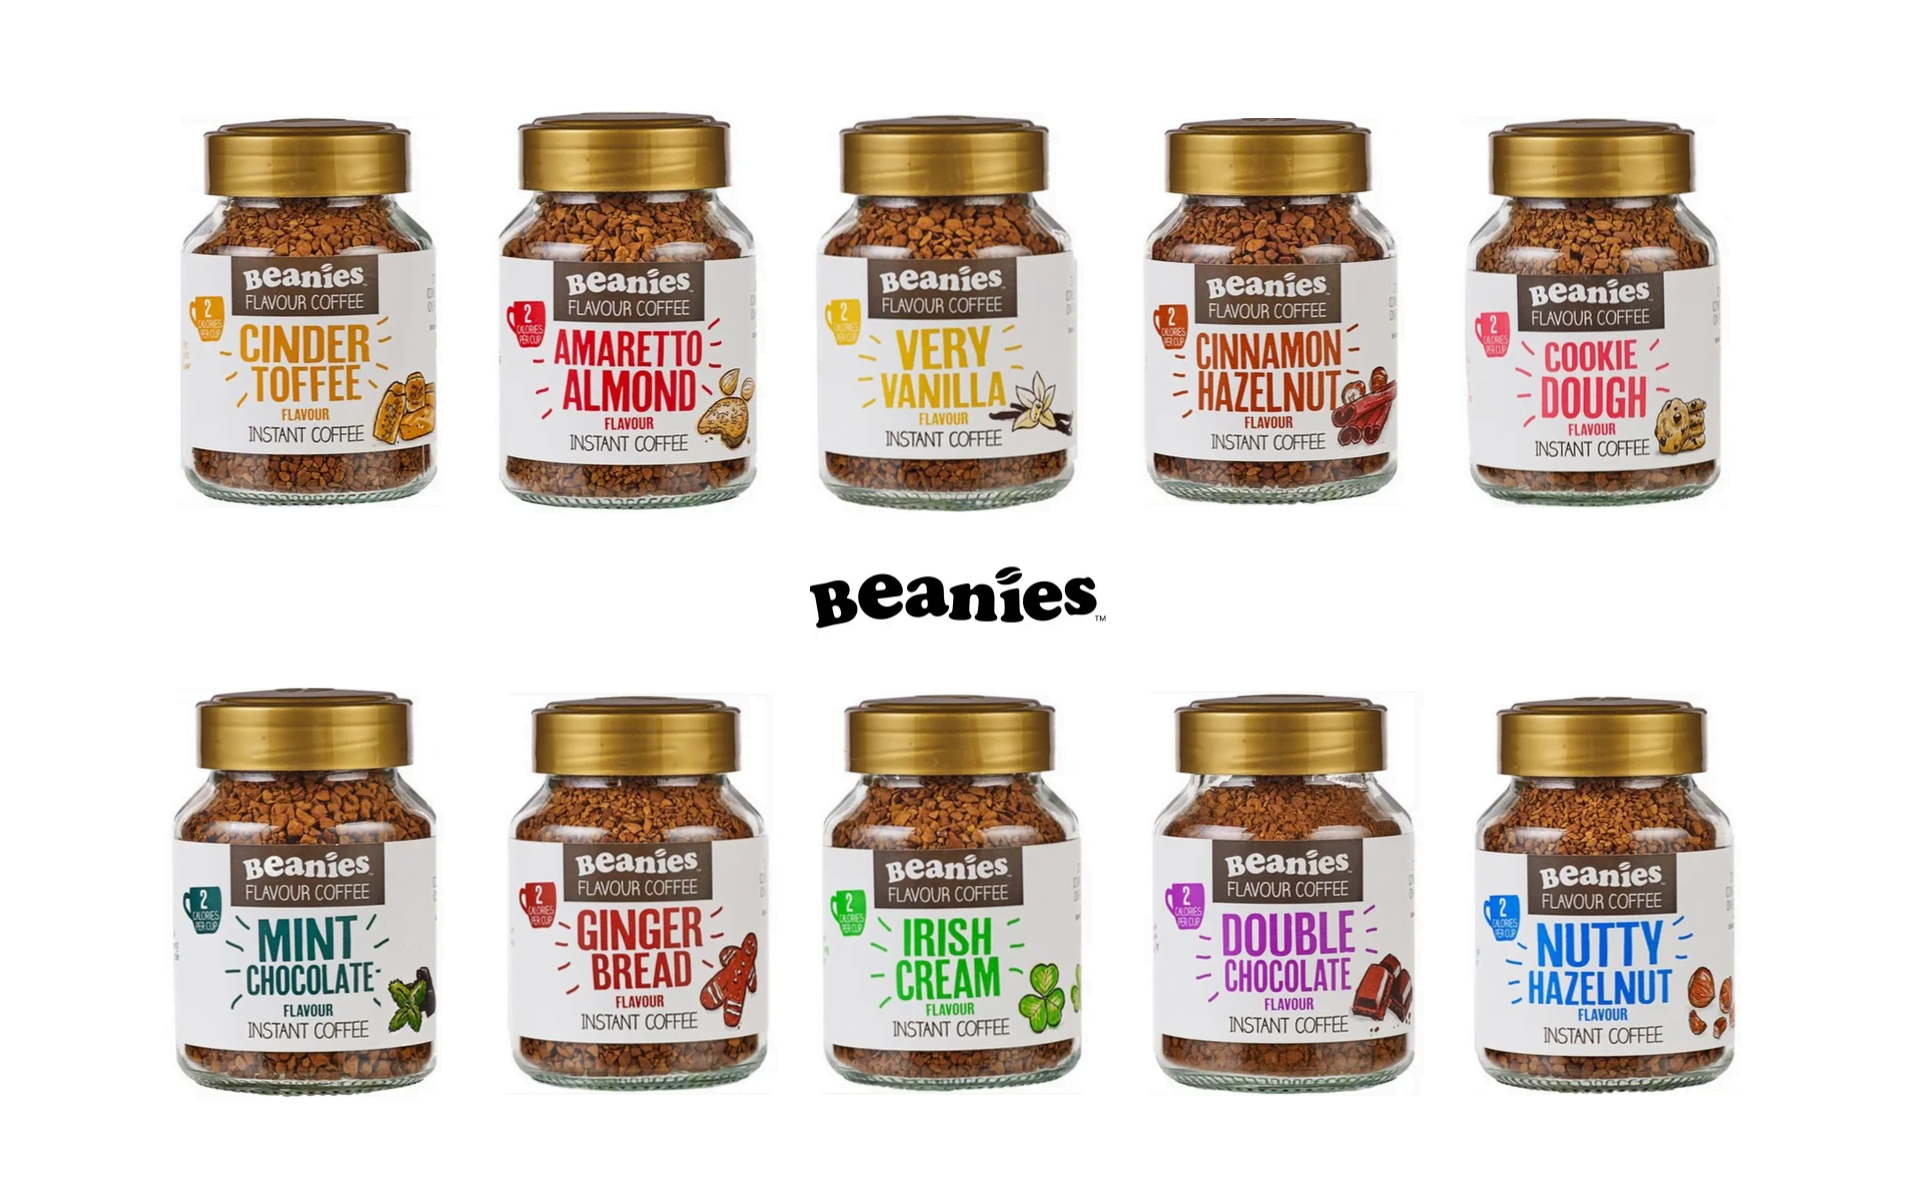 beanies flavour co instant coffee jars